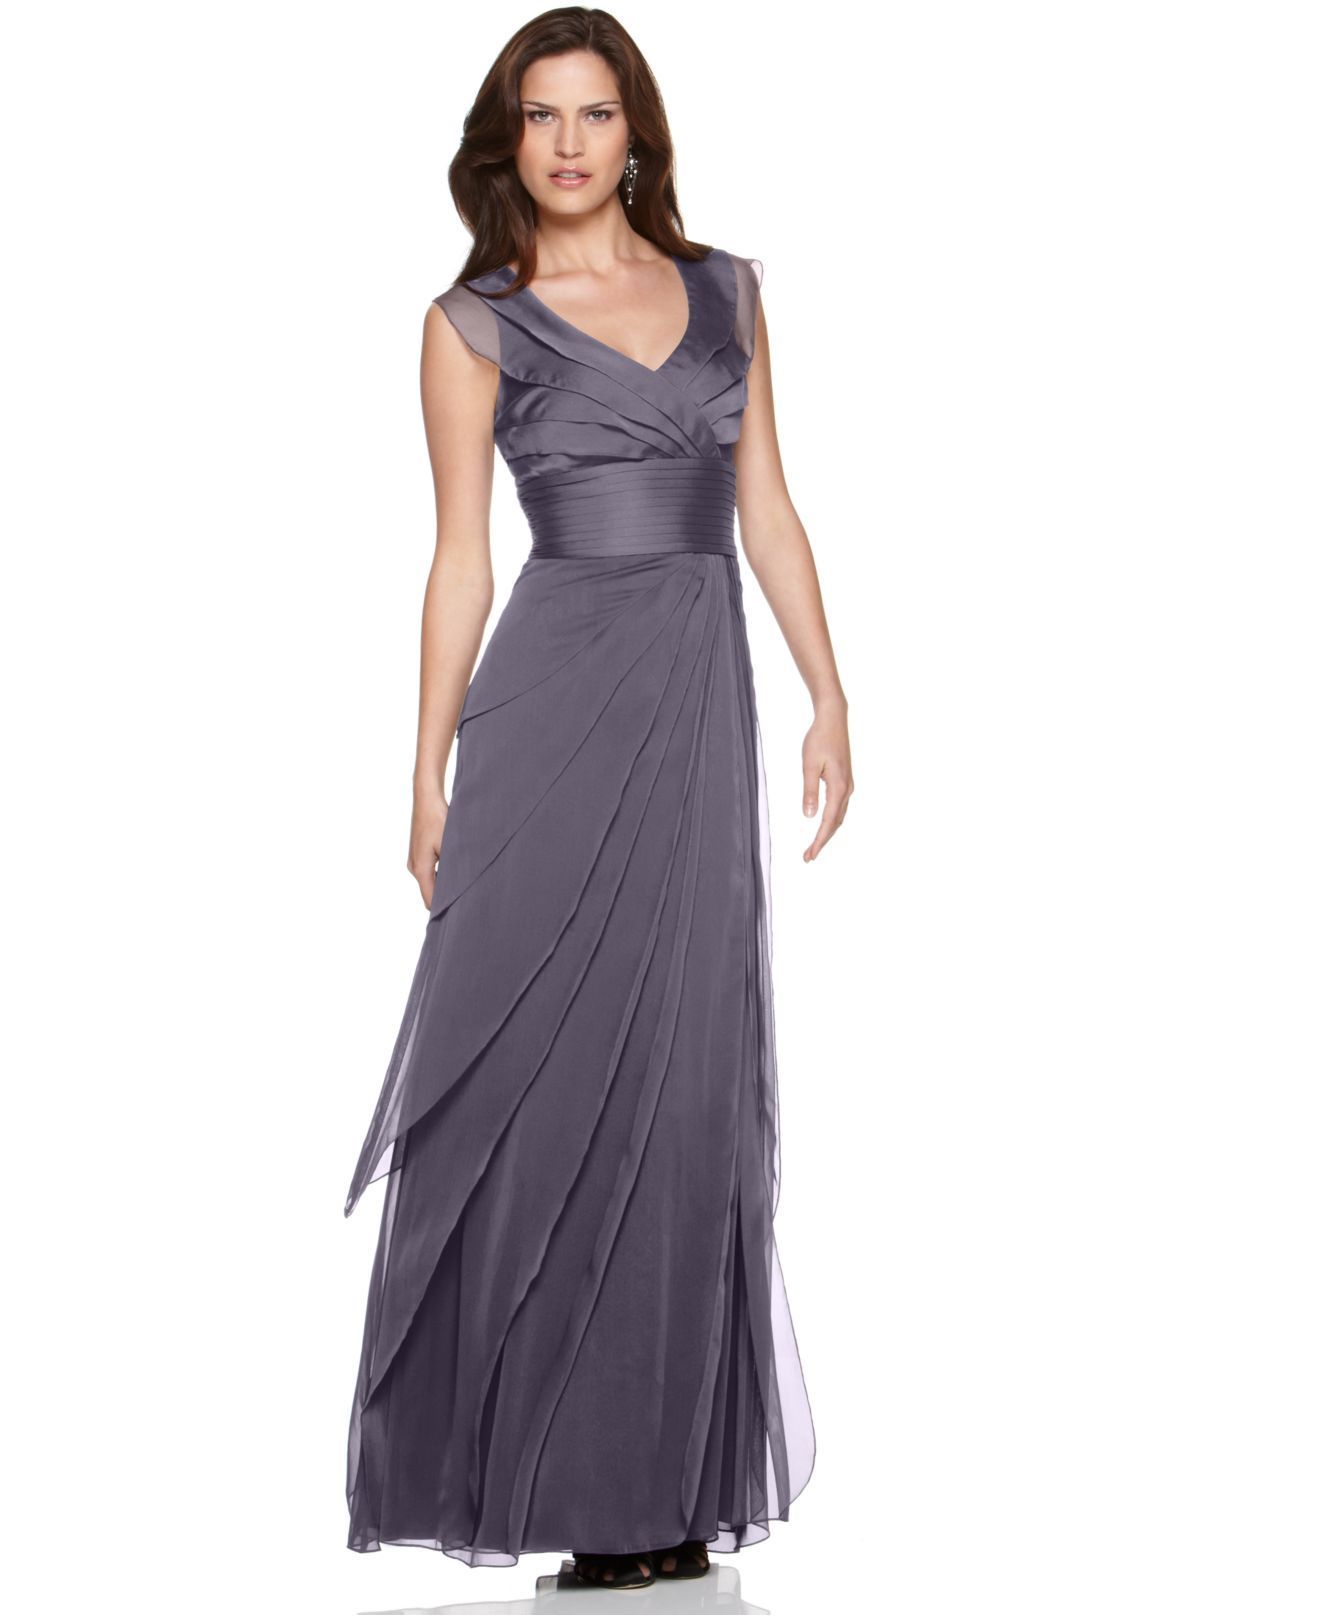 Adrianna Papell Dress, Tiered Evening Dress - Womens Wedding